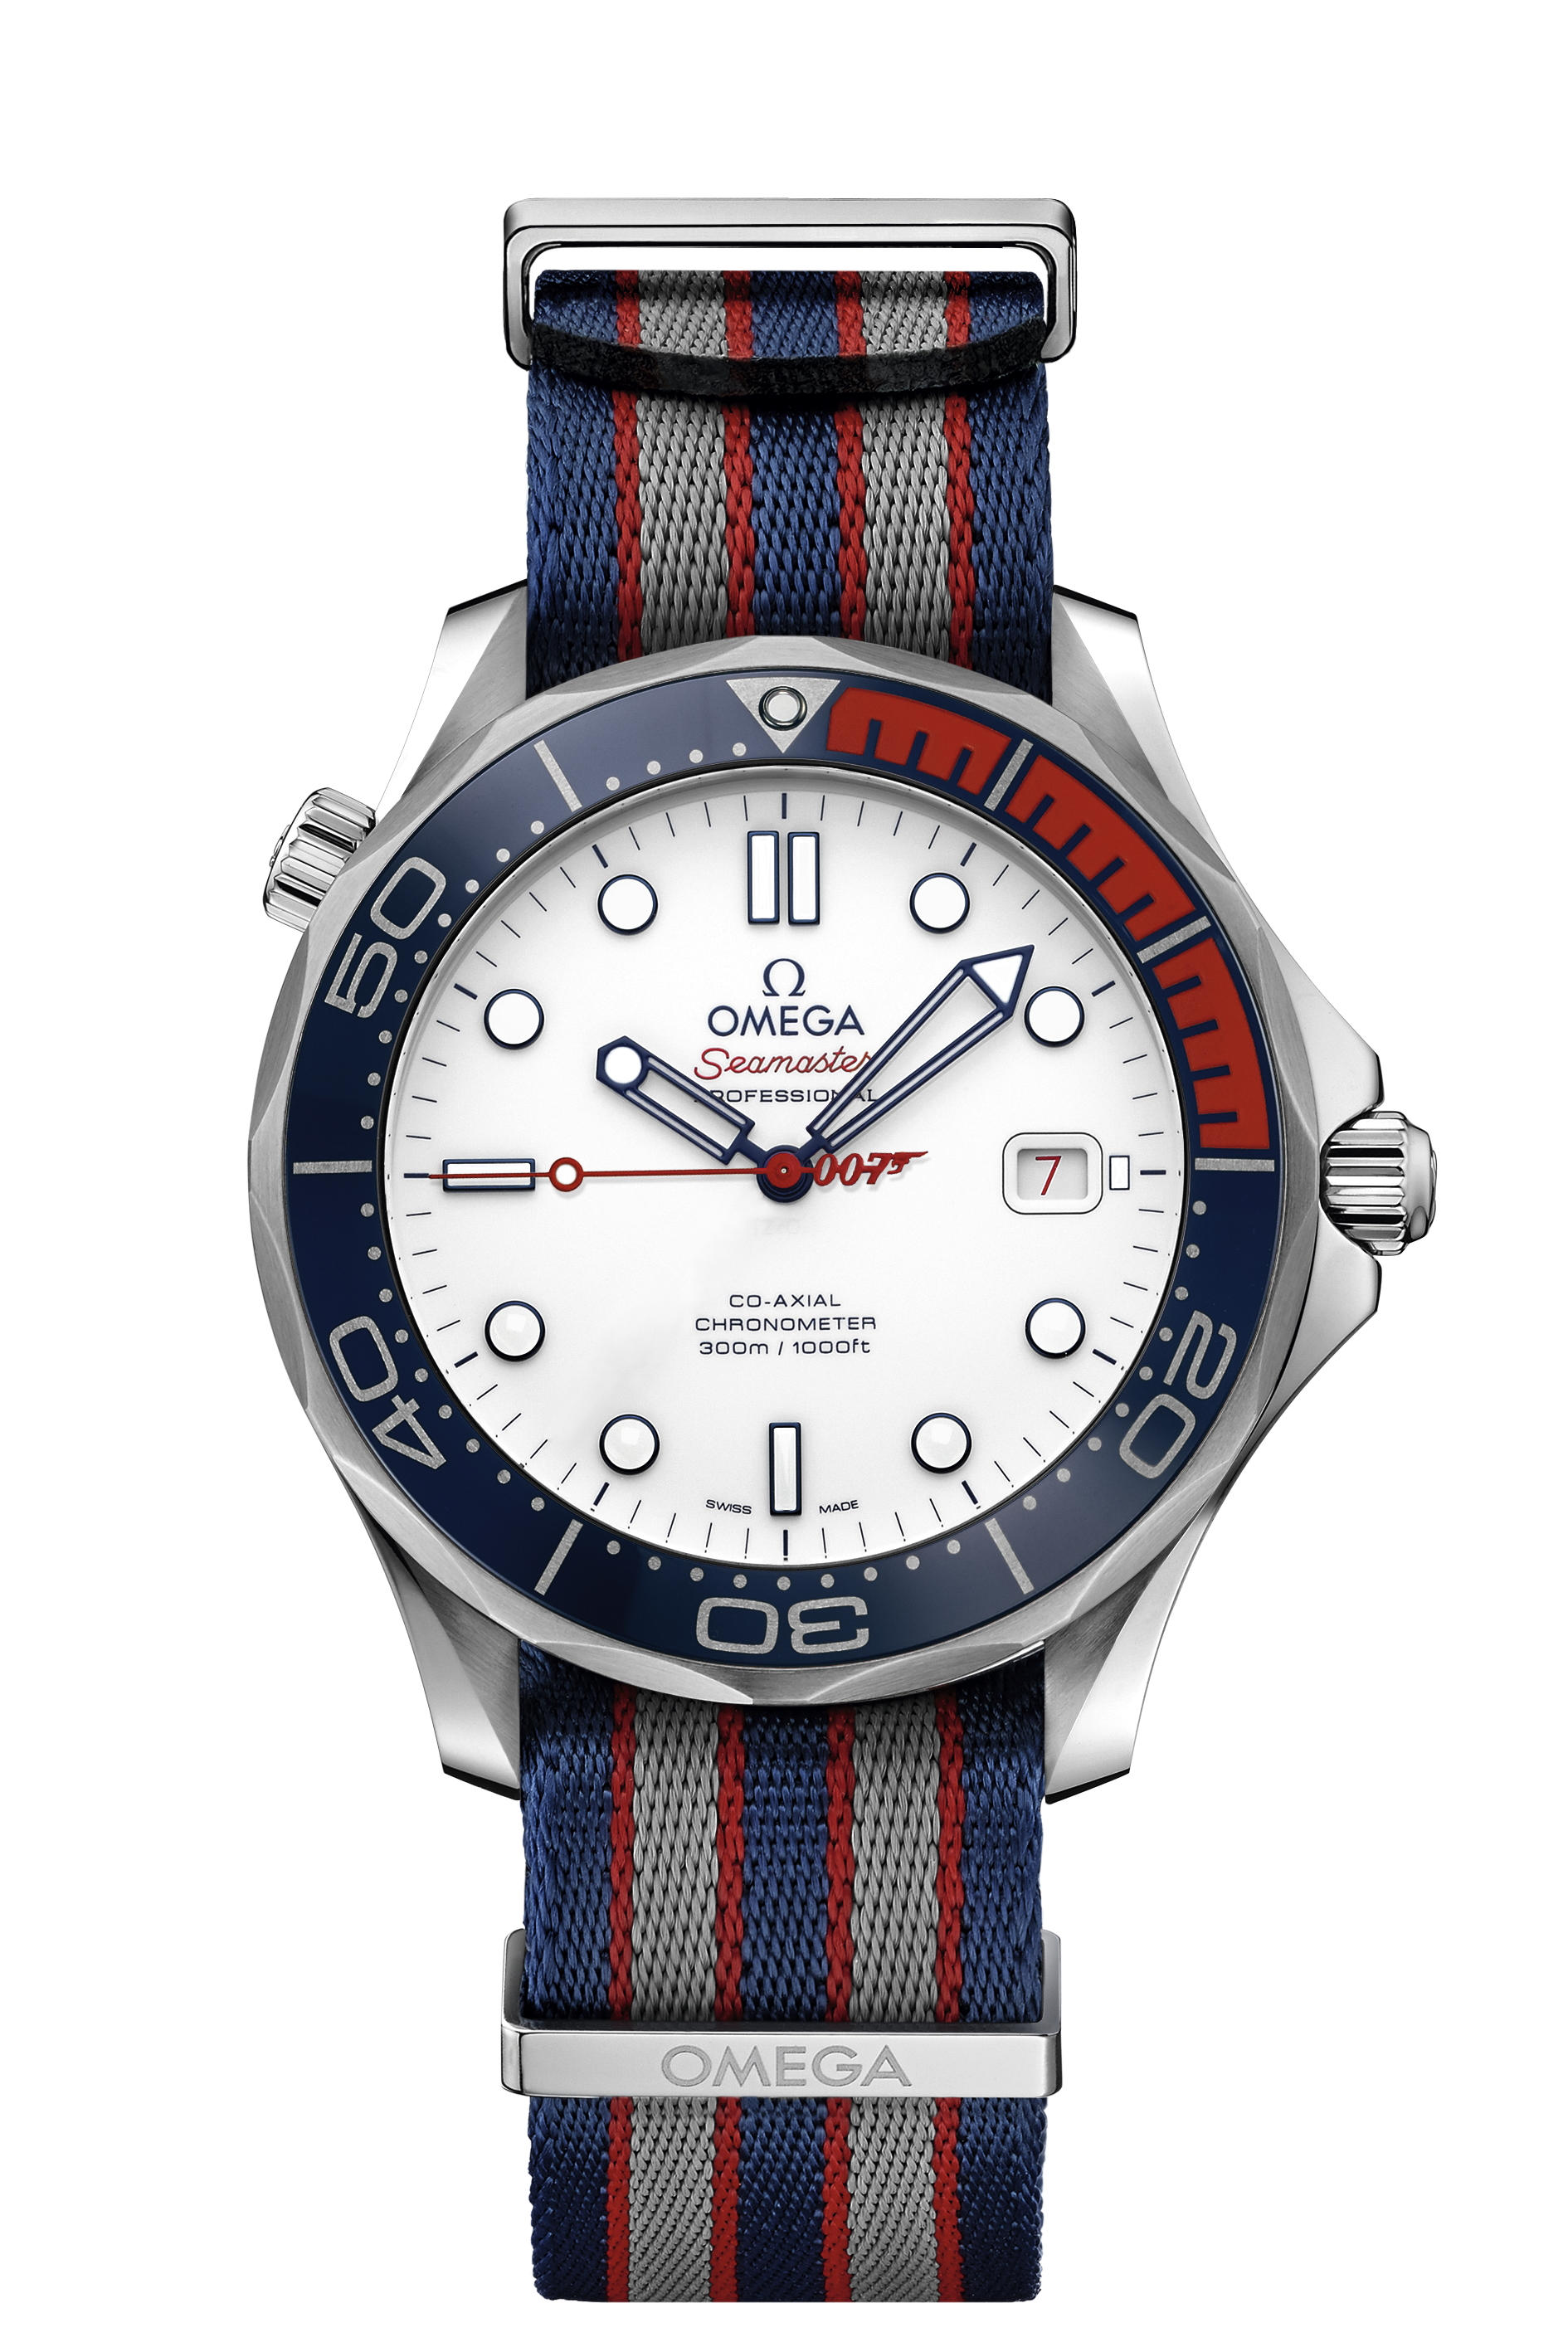 OMEGA, STEEL SEAMASTER COMMANDERS WATCH WITH UNIFORM